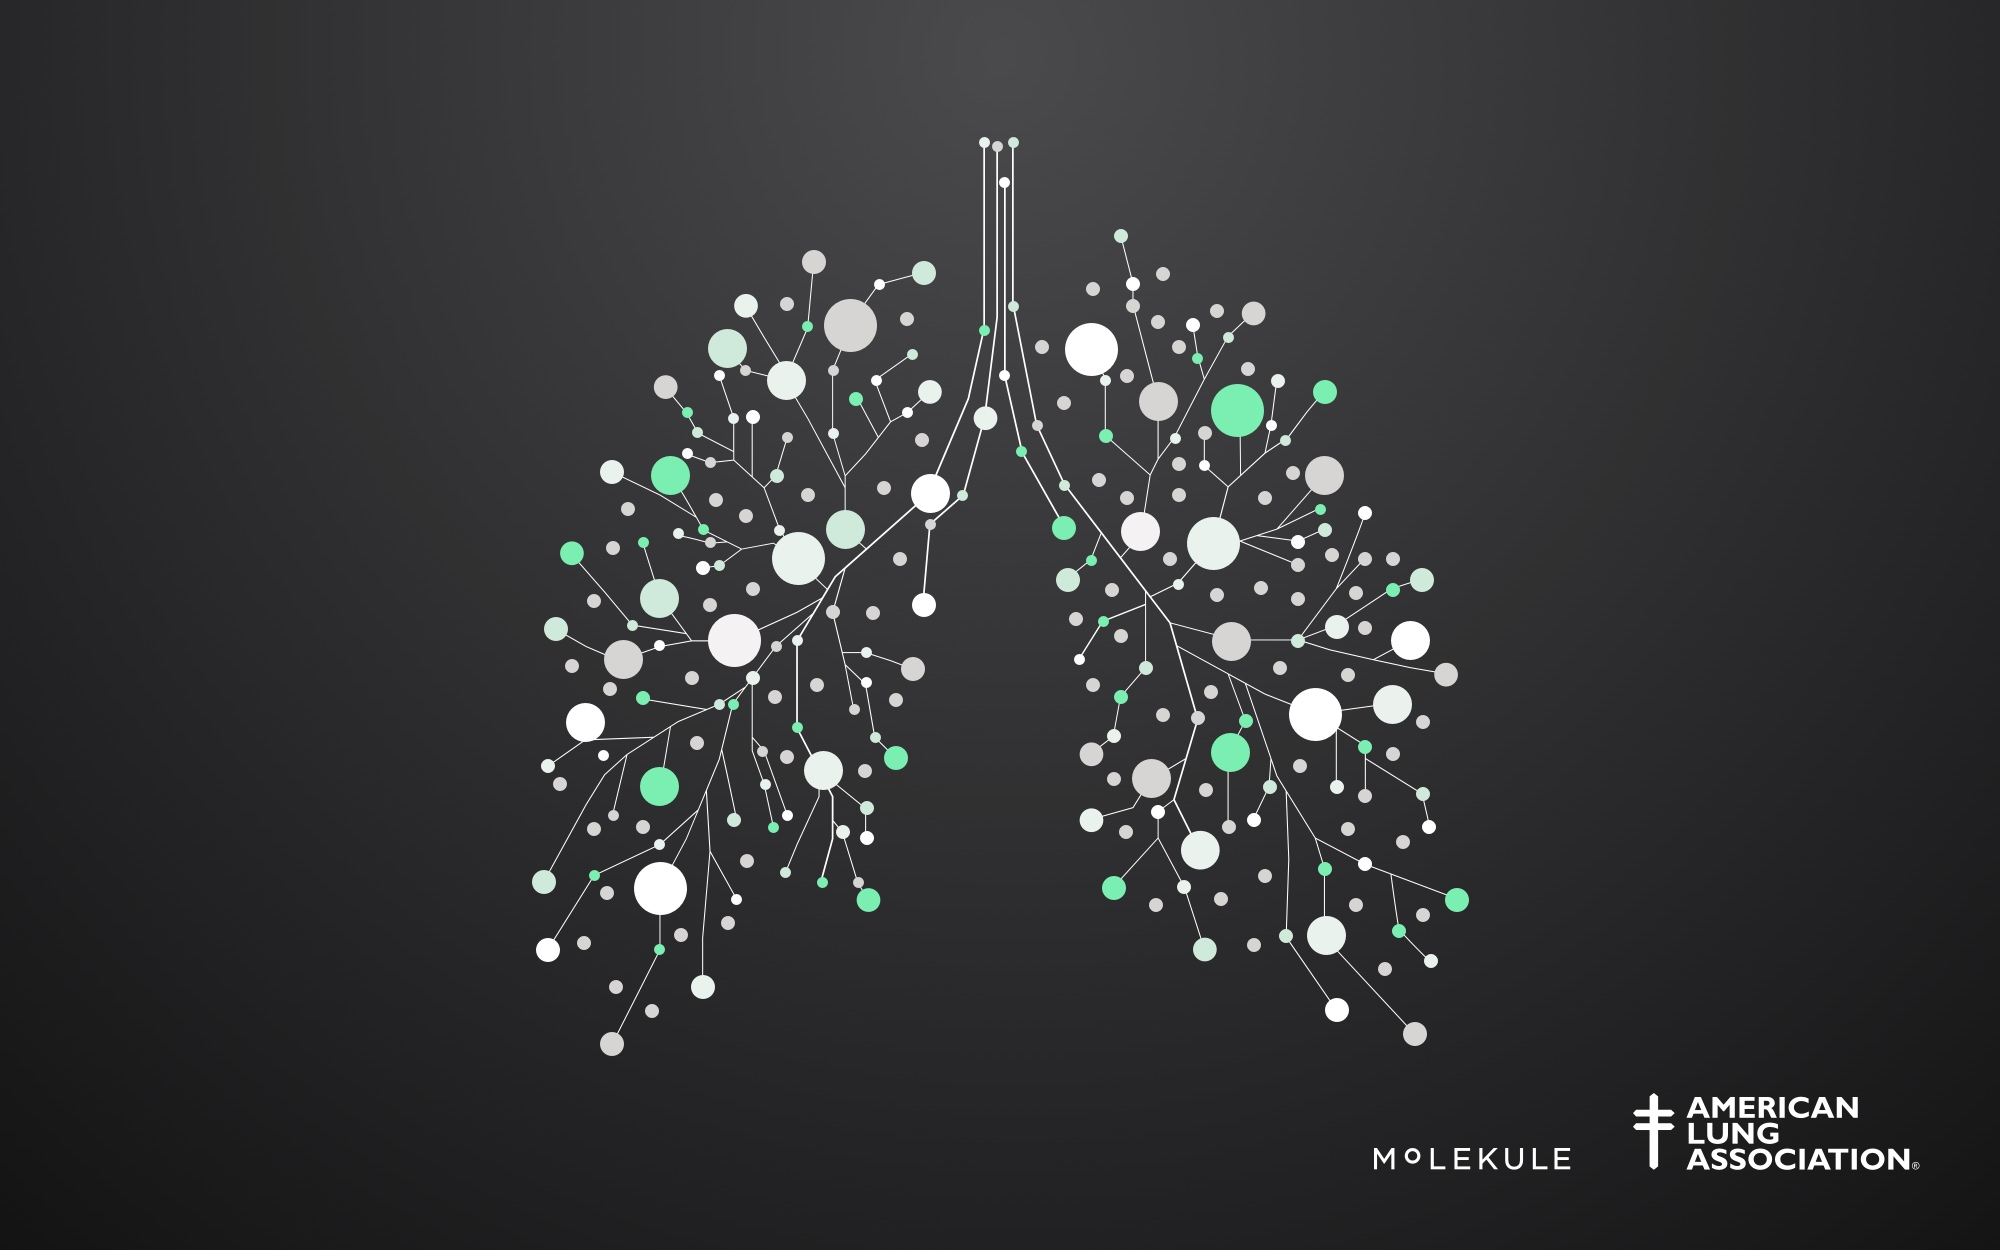 Molekule and American Lung Association Partnership